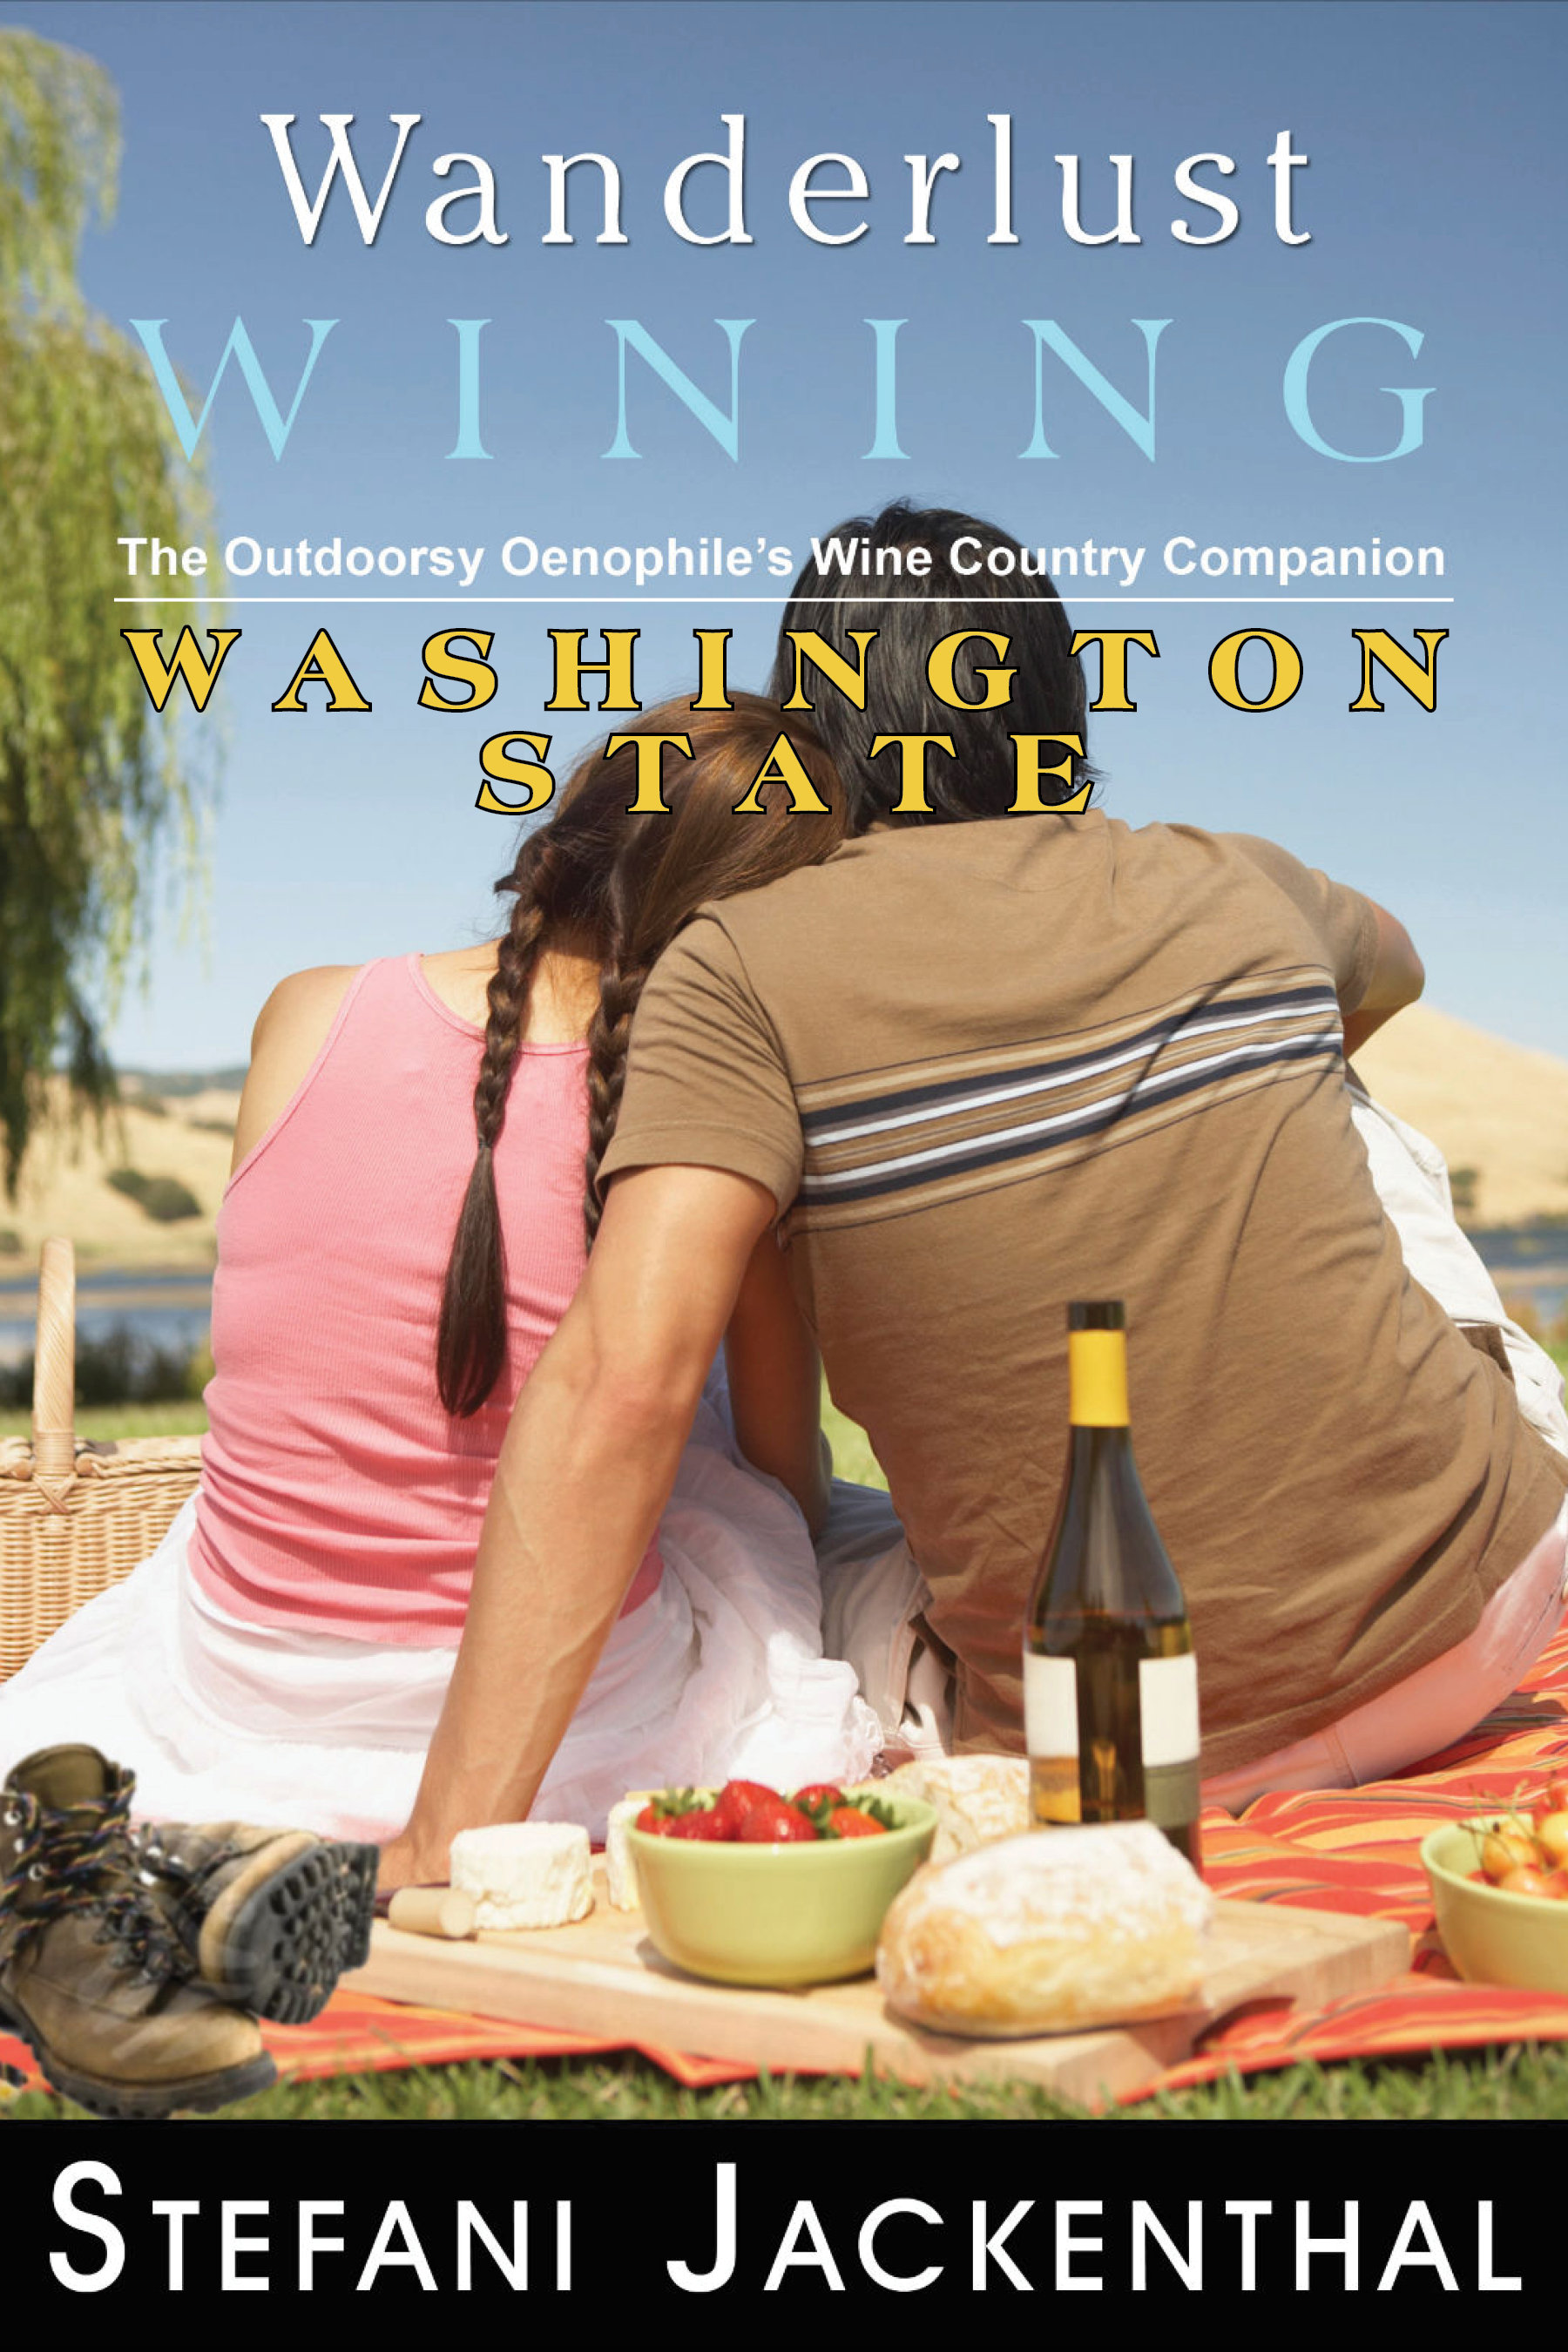 Wanderlust Wining Washington State: The Outdoorsy Oenophile's Wine Country Companion By: Stefani Jackenthal